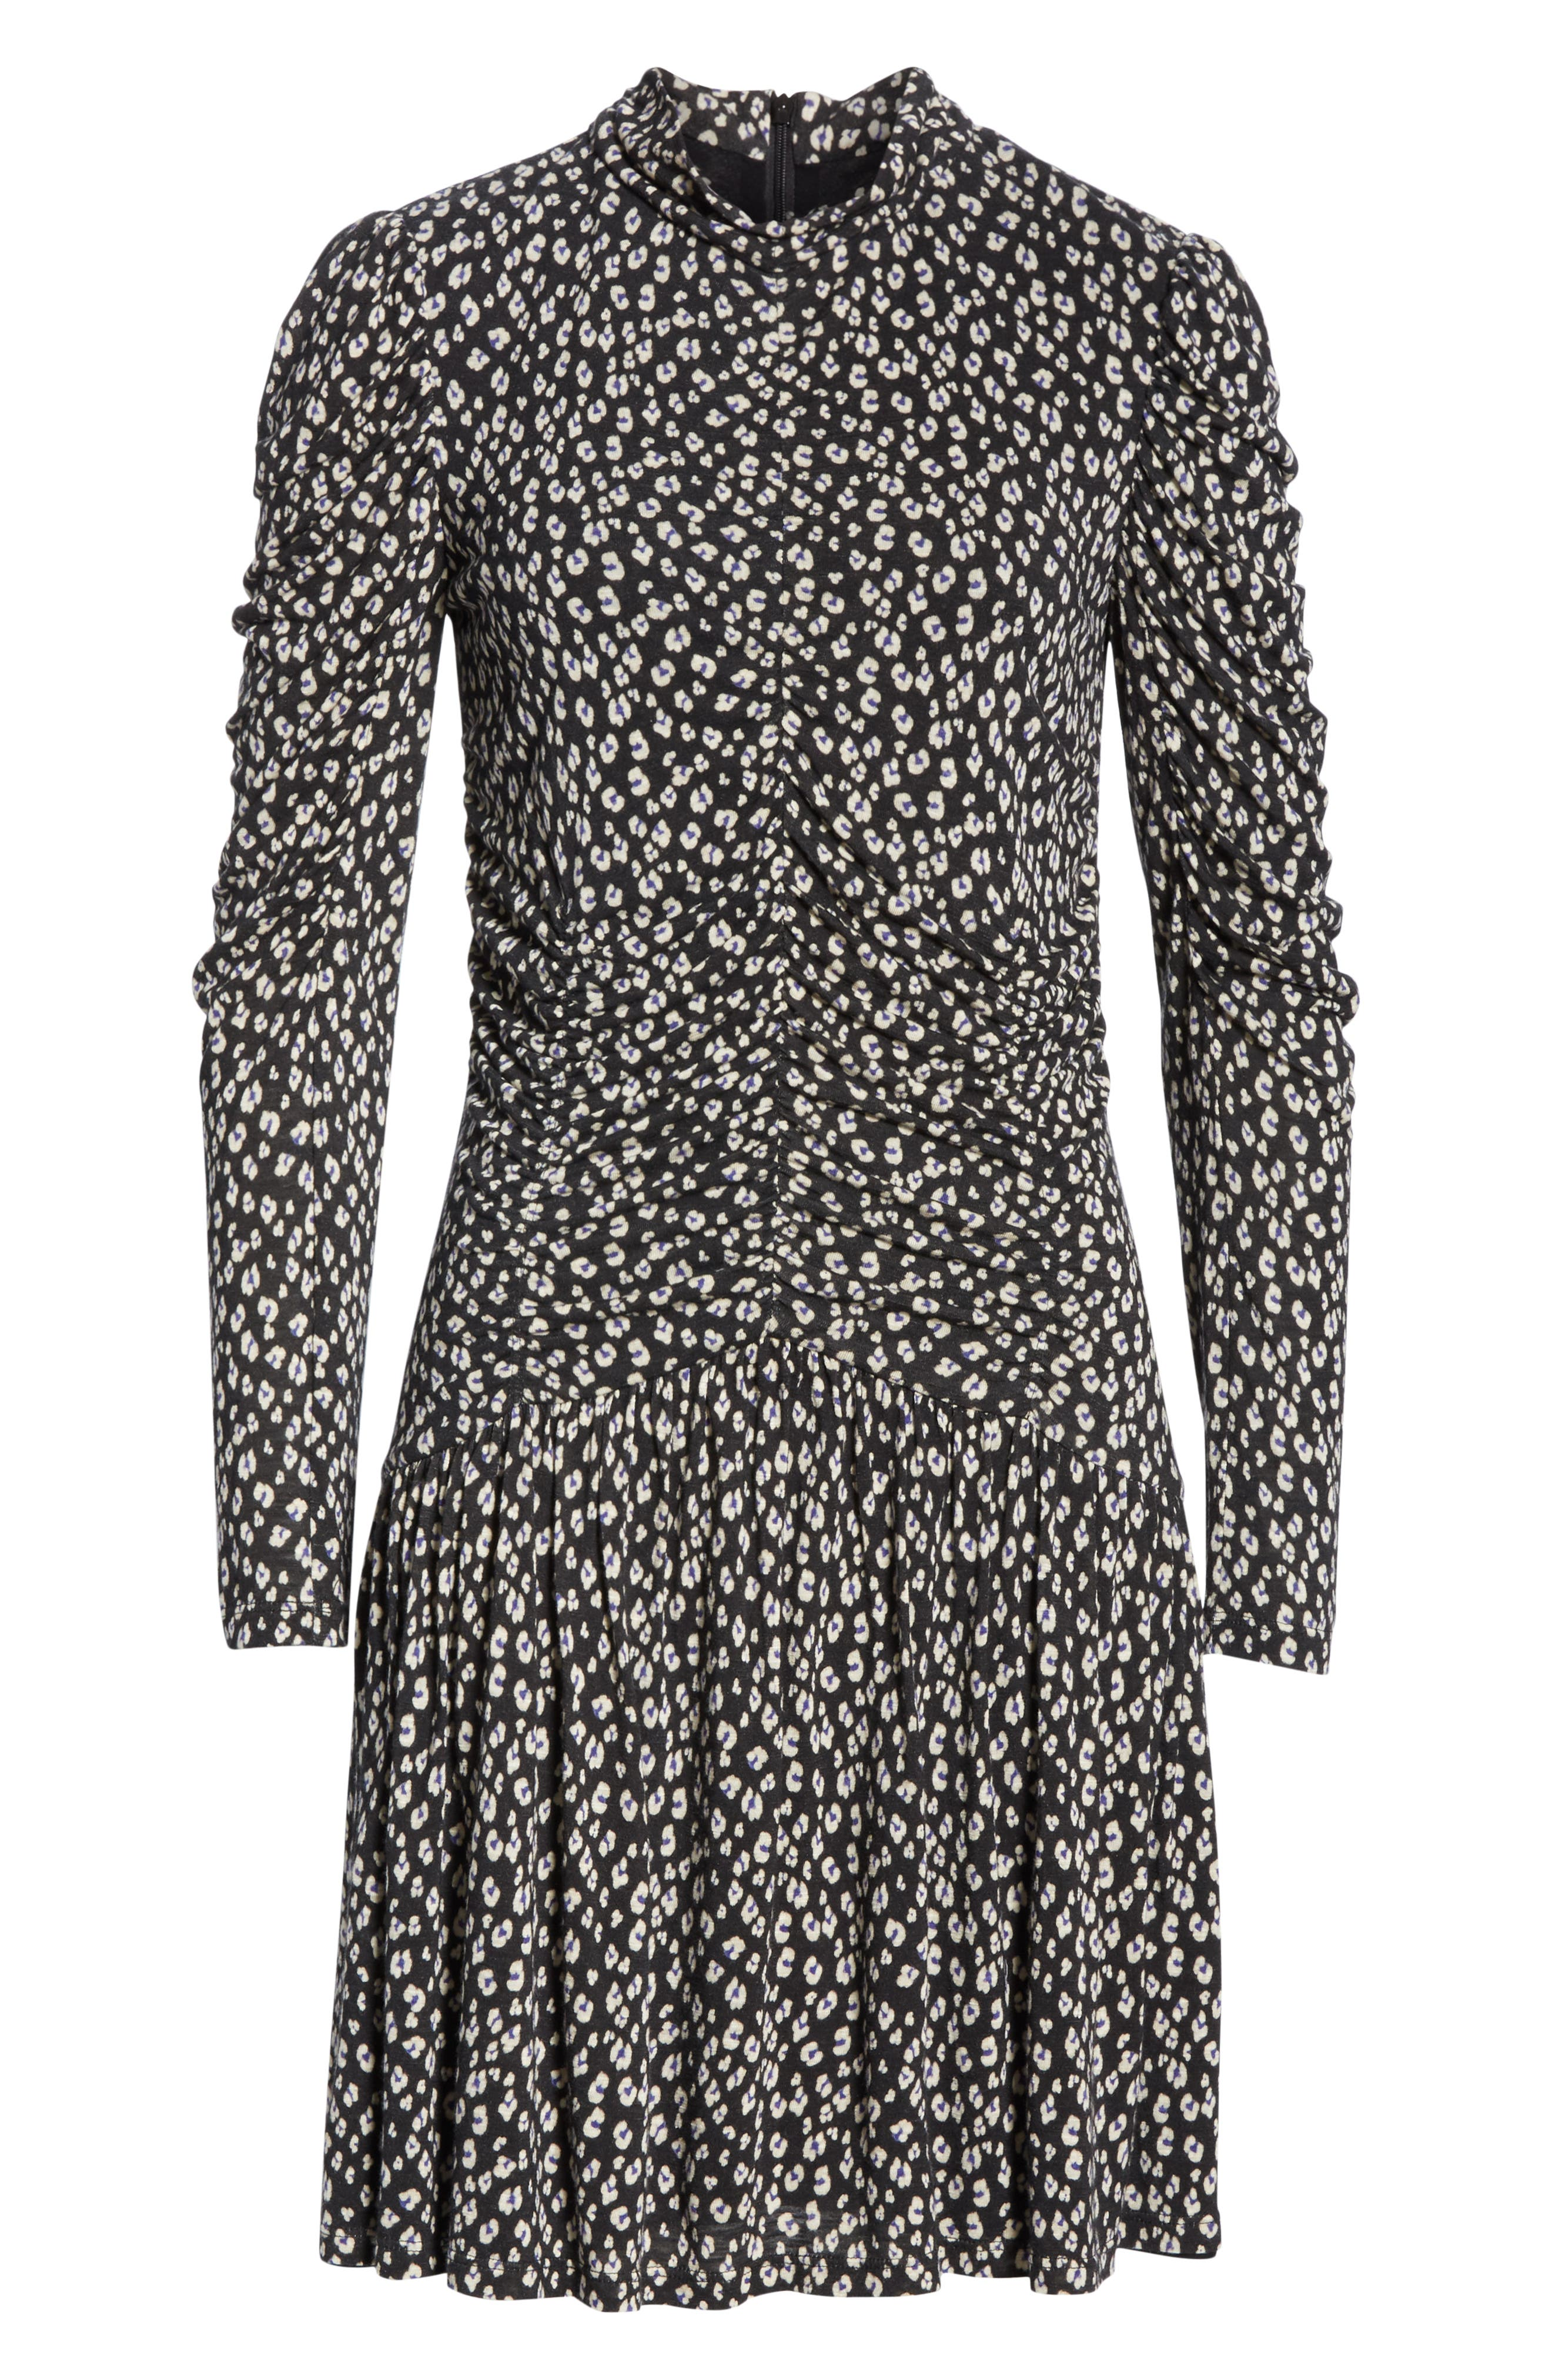 Cheetah Ruched Jersey Dress,                             Alternate thumbnail 6, color,                             BLACK COMBO